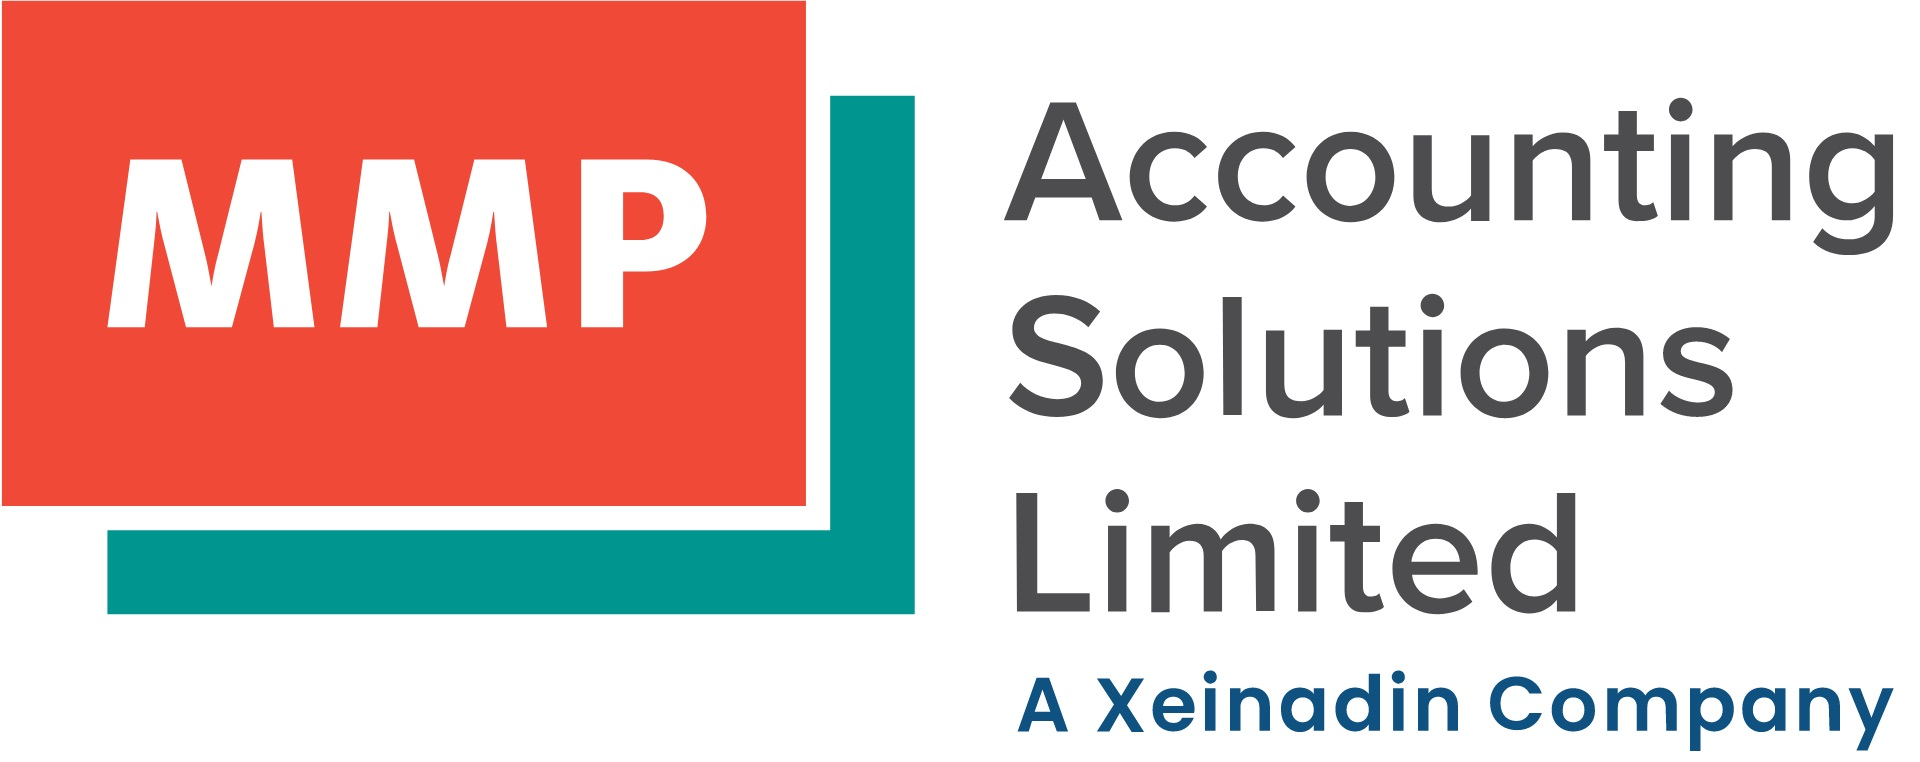 MMP Accounting Solutions Ltd Logo